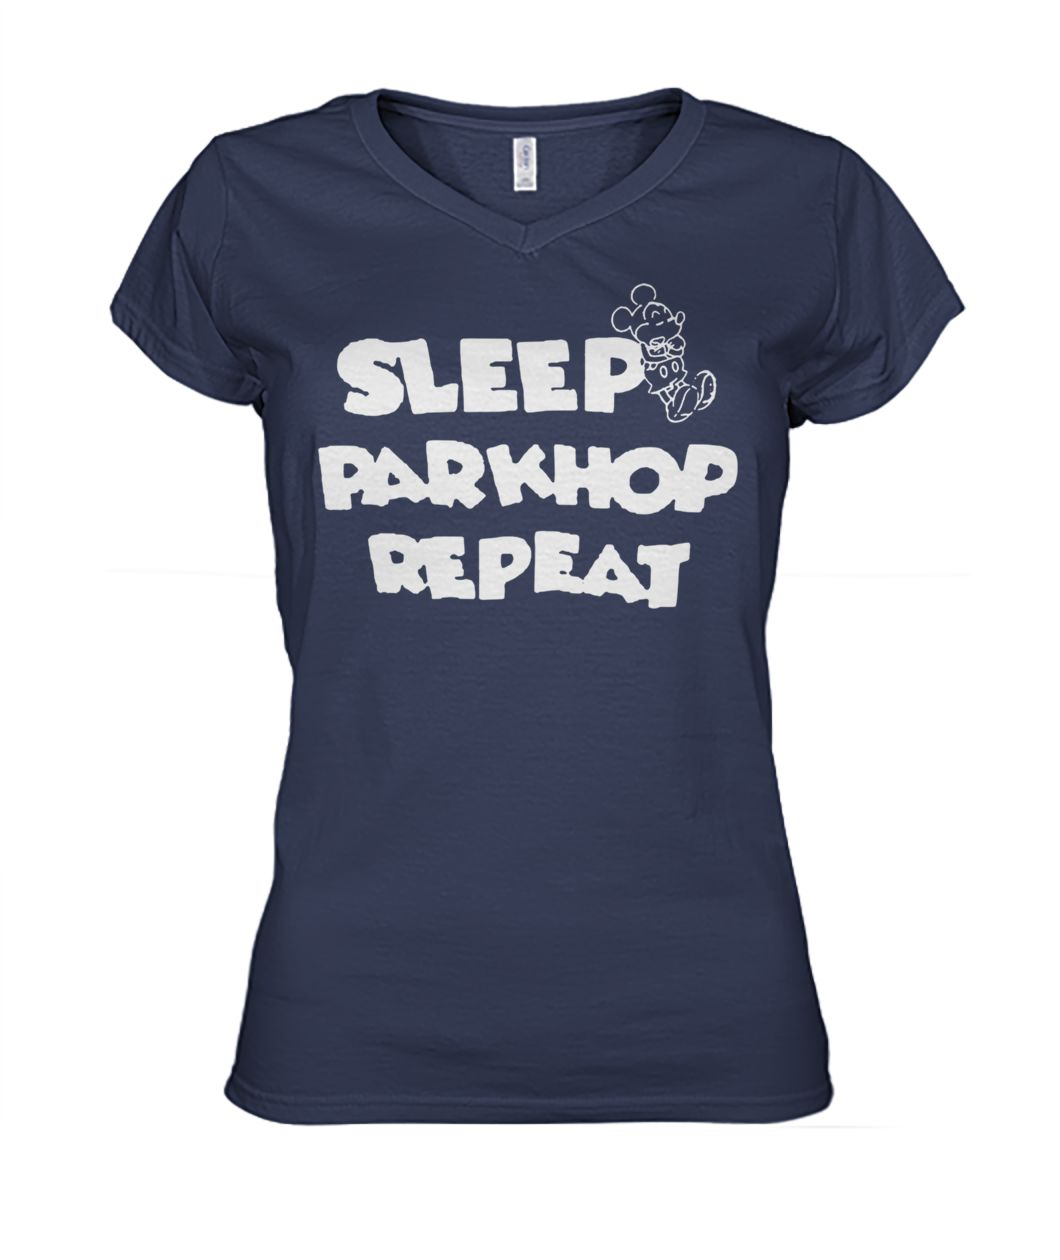 [Hot version] Mickey mouse sleep parkhop repeat shirt